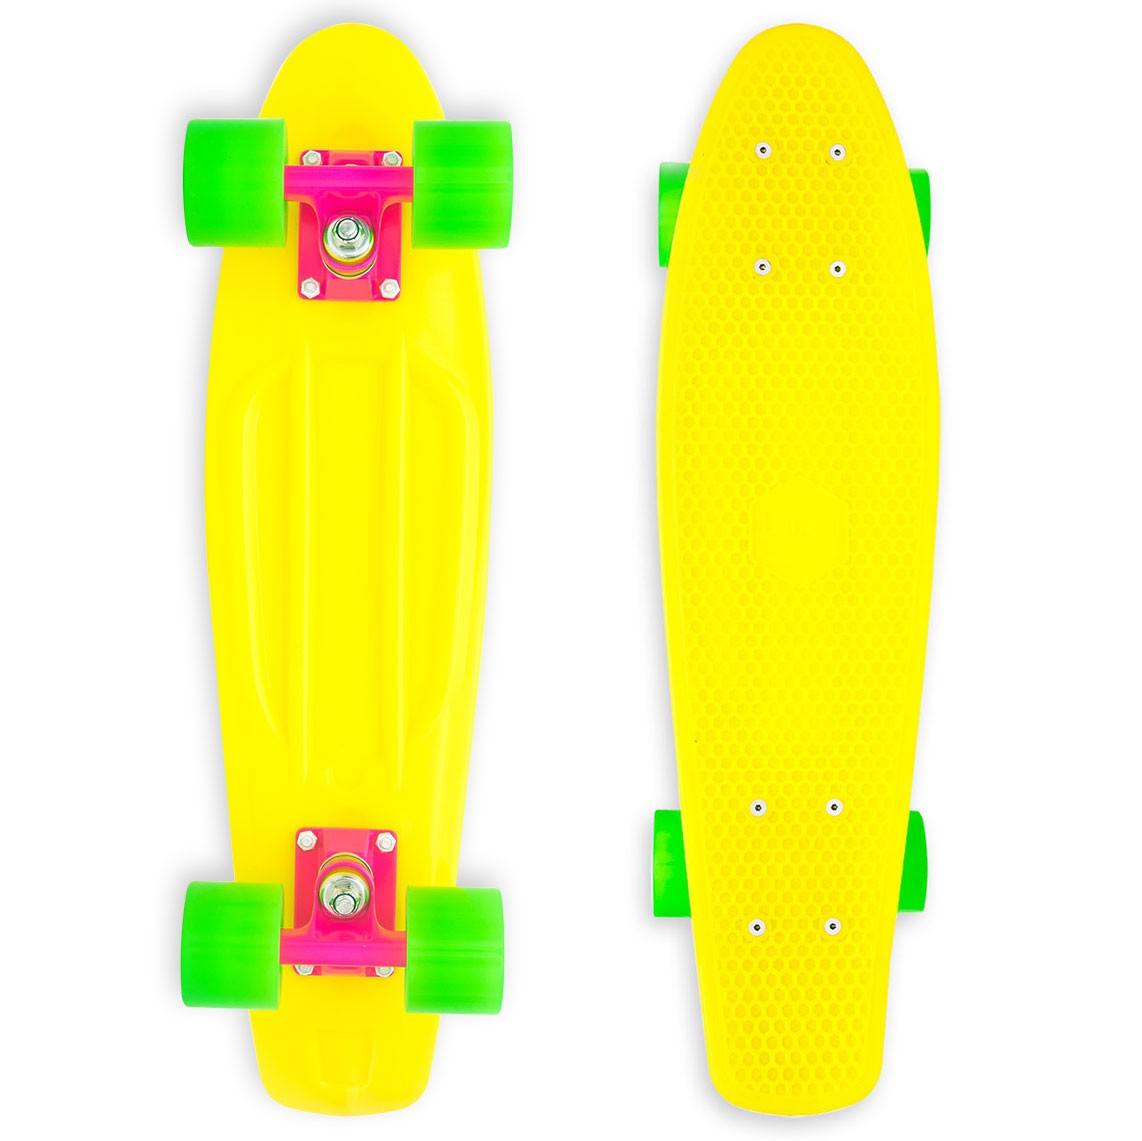 Baby Miller Yellow skateboard